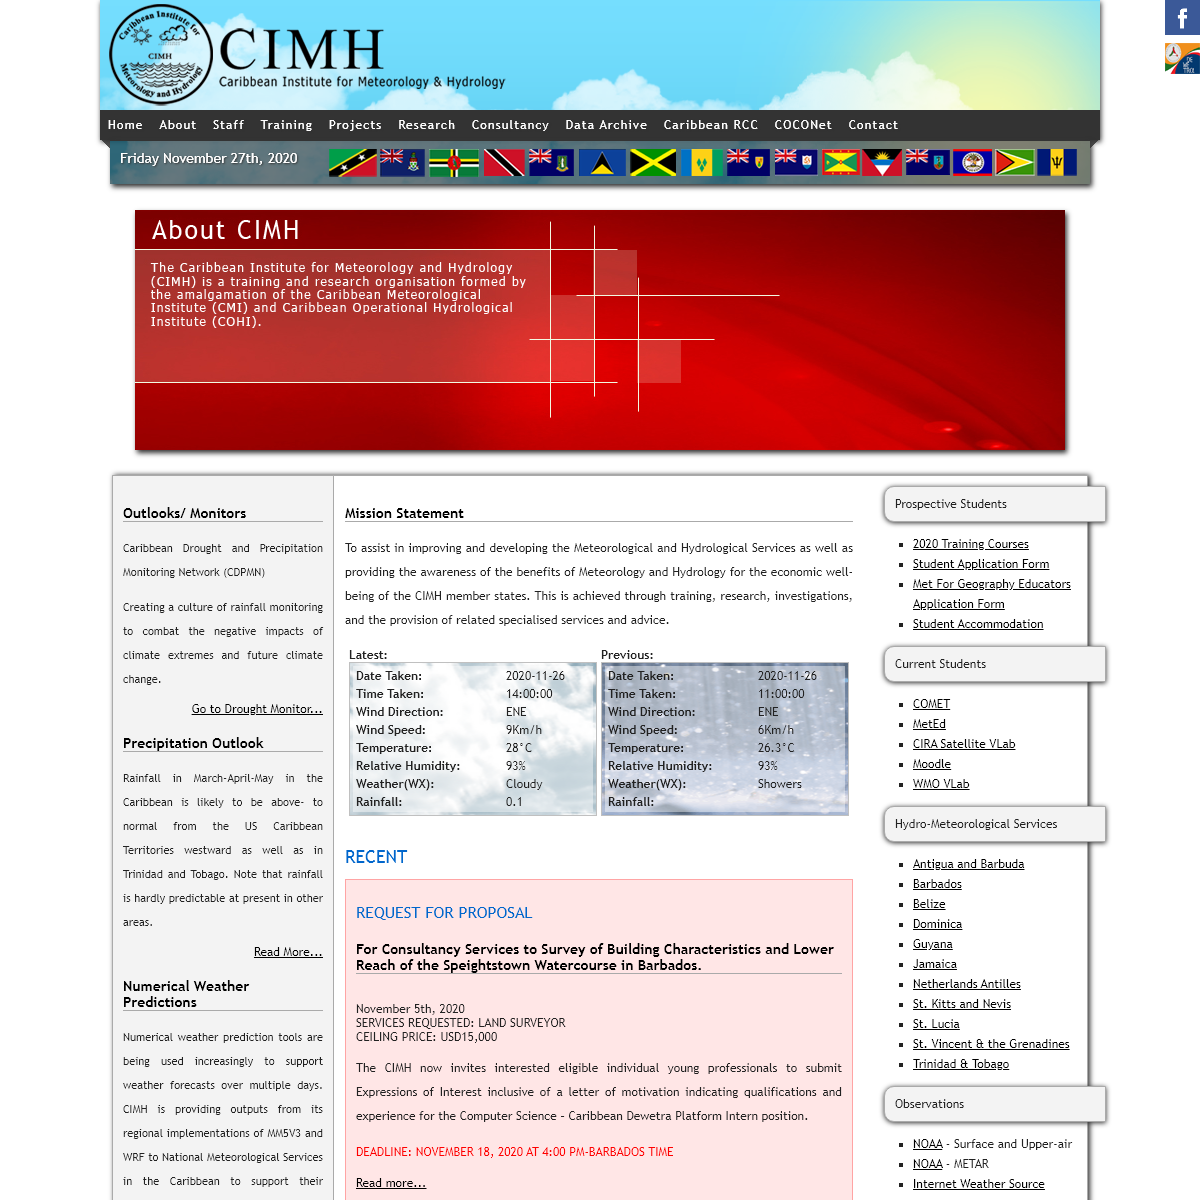 CIMH - Caribbean Institute for Meteorology & Hydrology